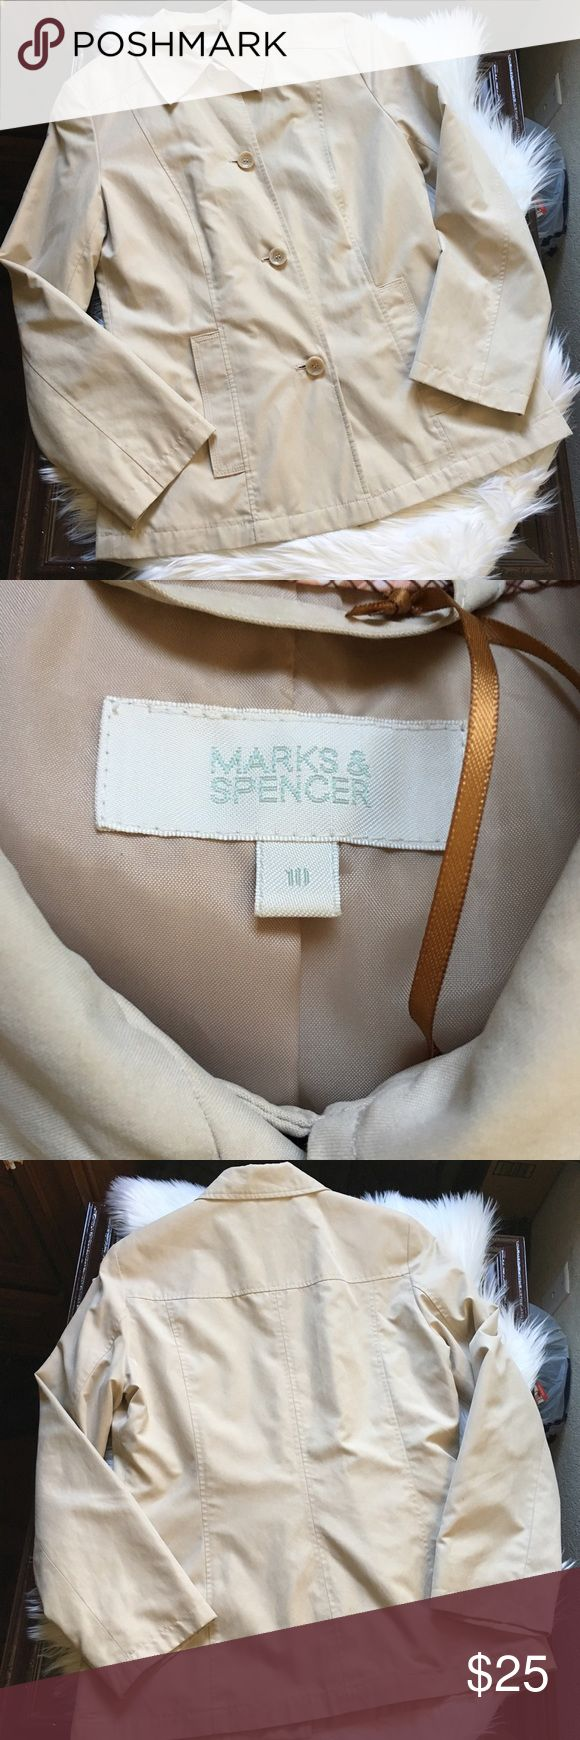 Marks & Spencer Jacket Great condition! Marks & Spencer Jackets & Coats